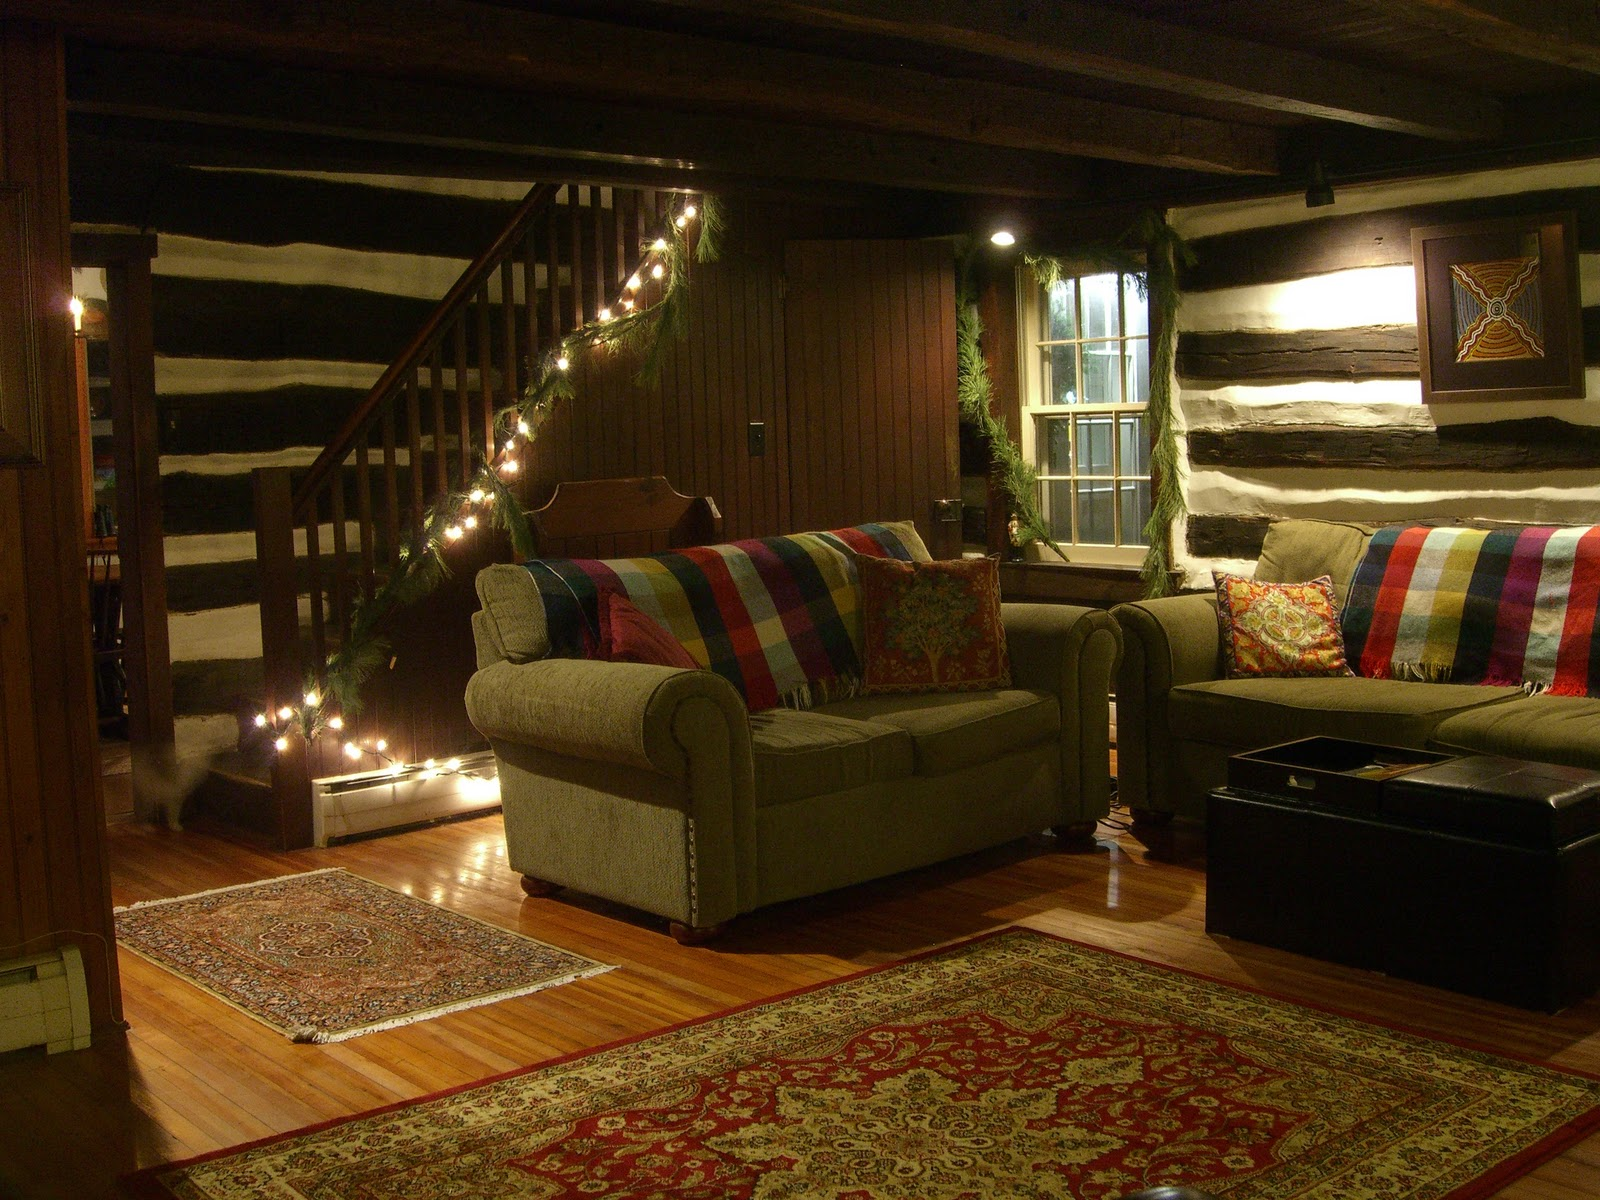 Shipping Container Home moreover Stone Fireplace With TV Above Ideas in addition Winter Cabin In Snowy Woods as well Log Cabin Rentals Brown County Indiana moreover Park Vista Hotel Gatlinburg. on cabin living room fireplace